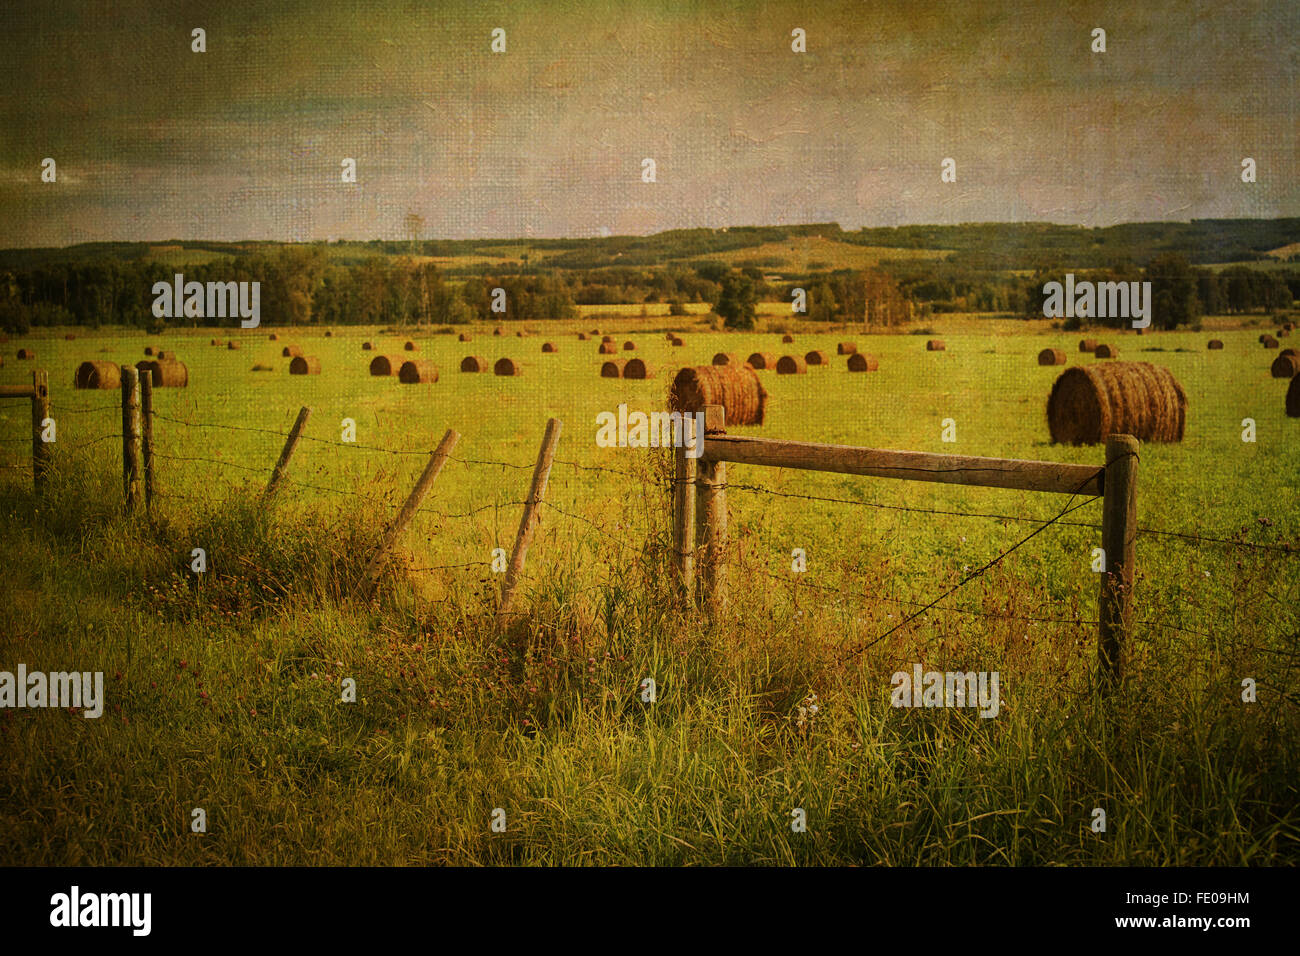 Rural Alberta farmland with a painterly vintage effect and texture. - Stock Image